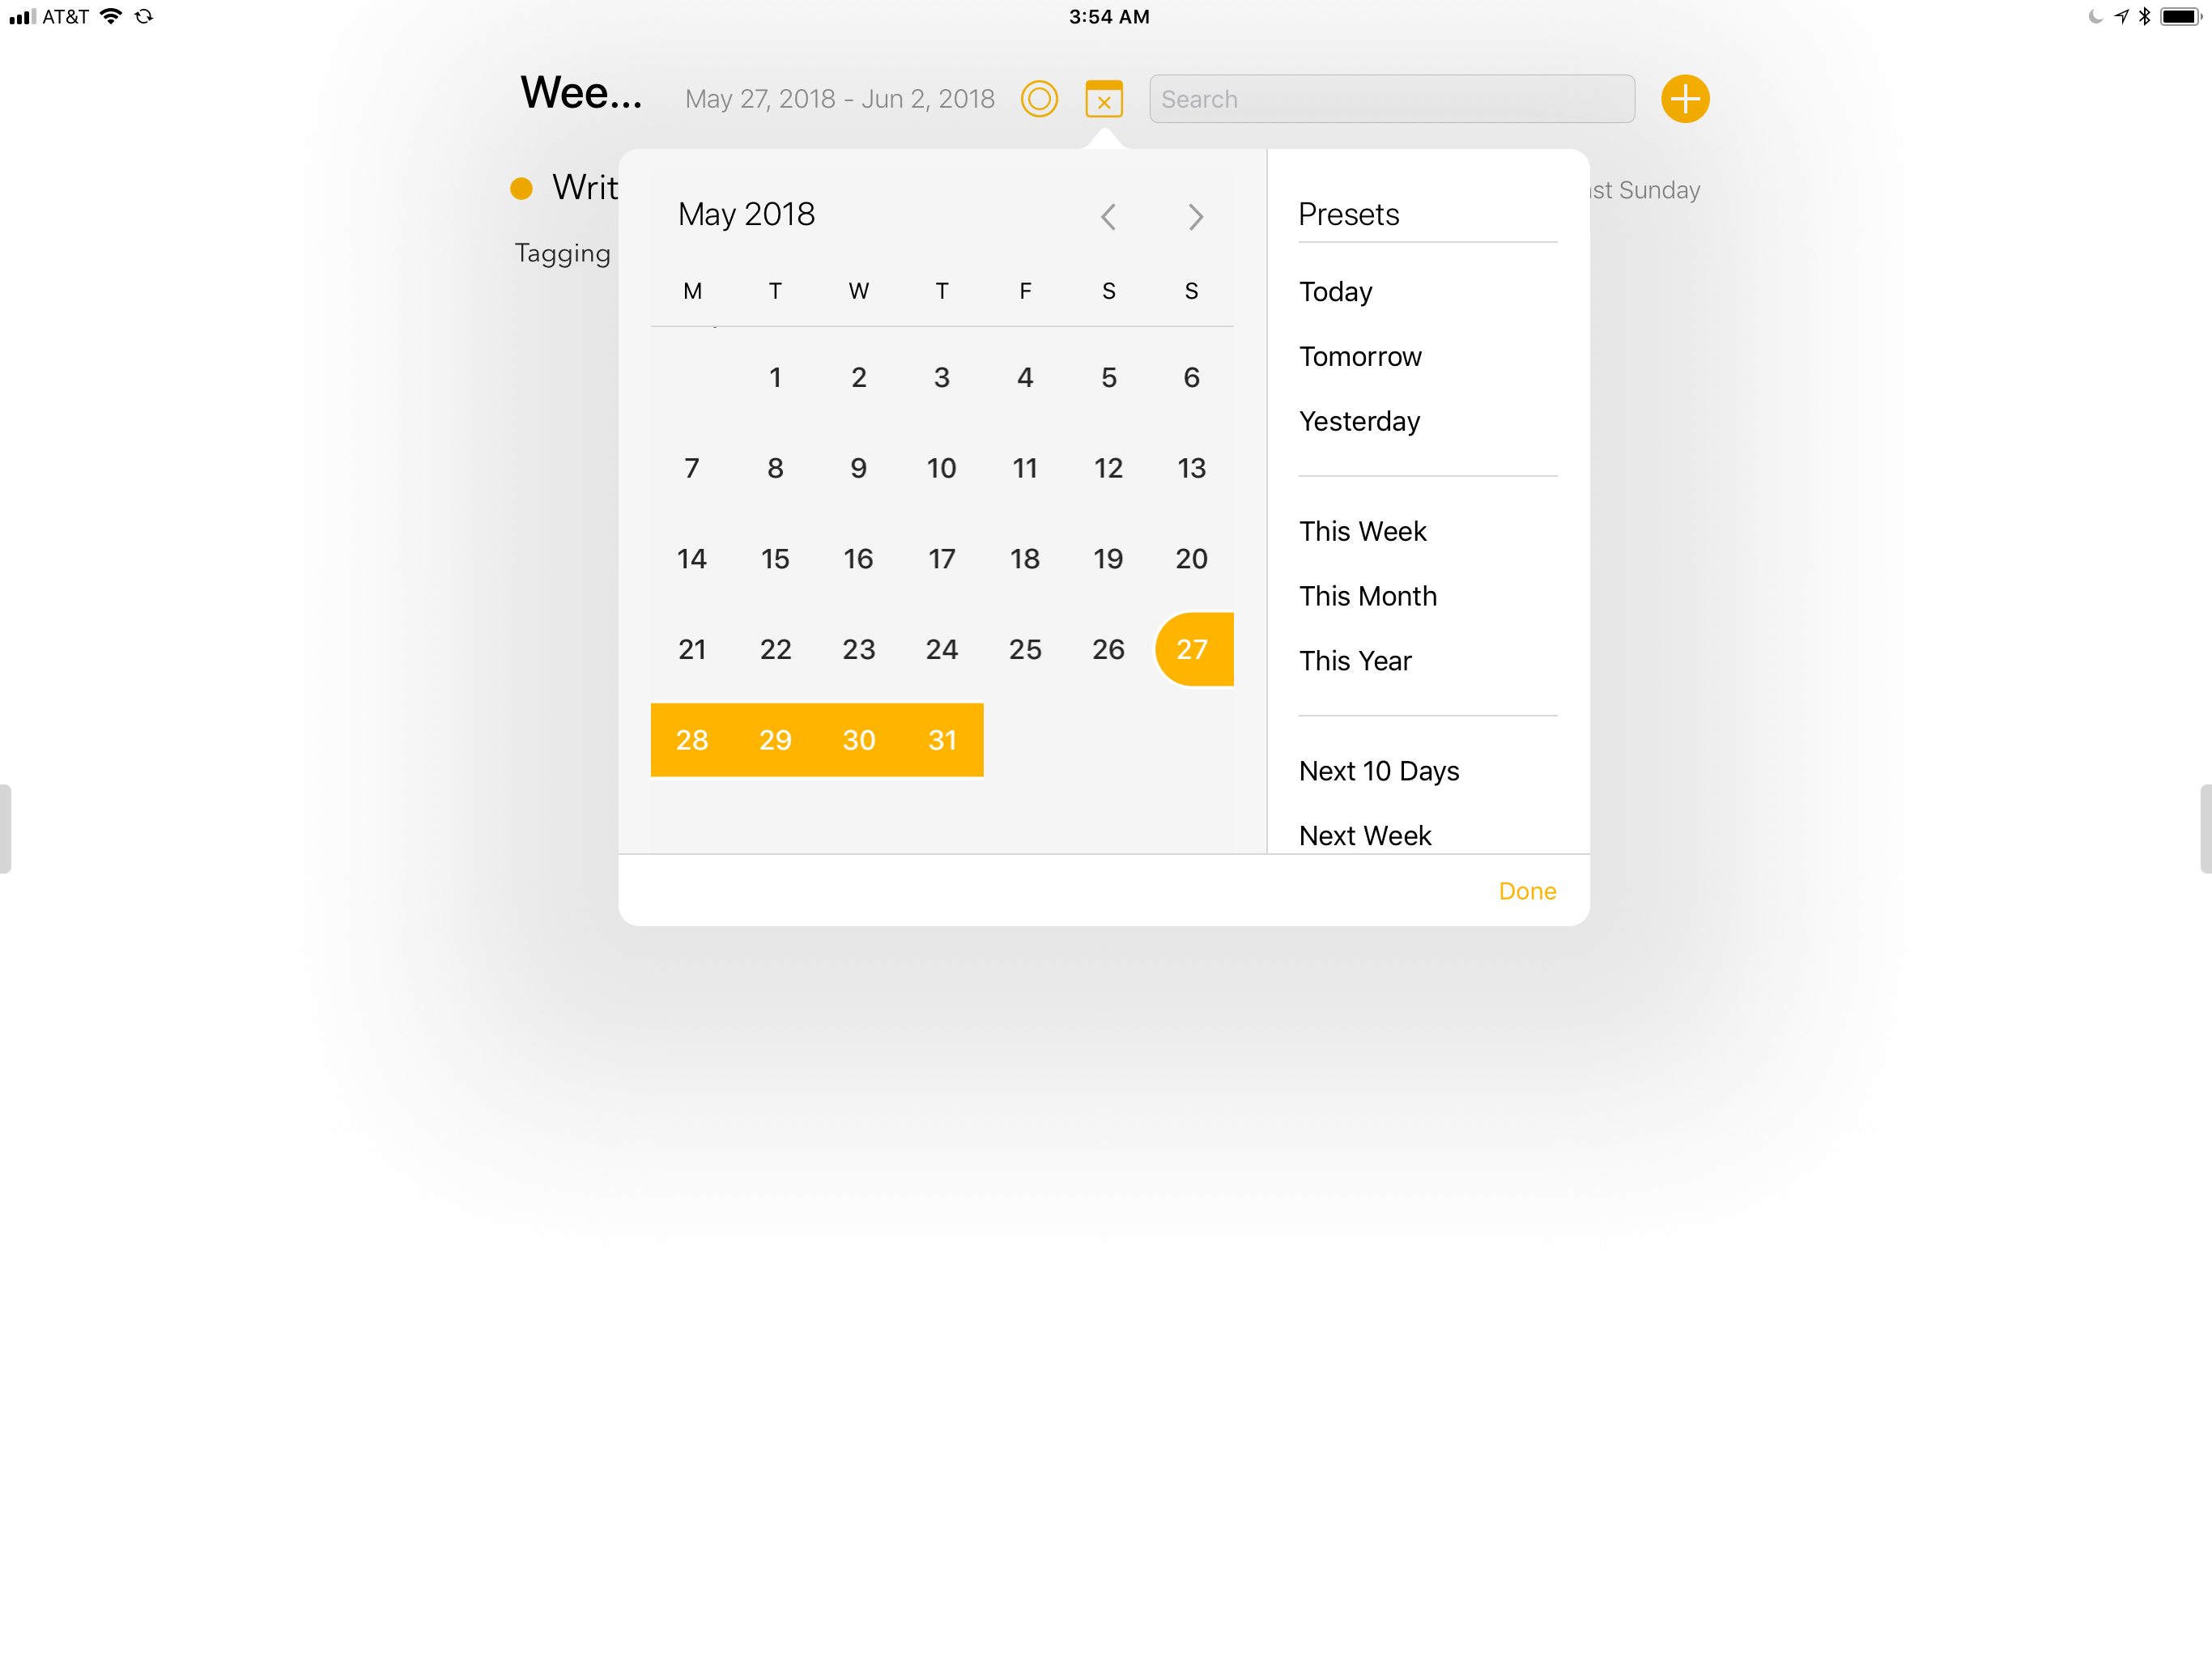 Agenda lets you search by date with prebuilt time ranges or custom time periods.